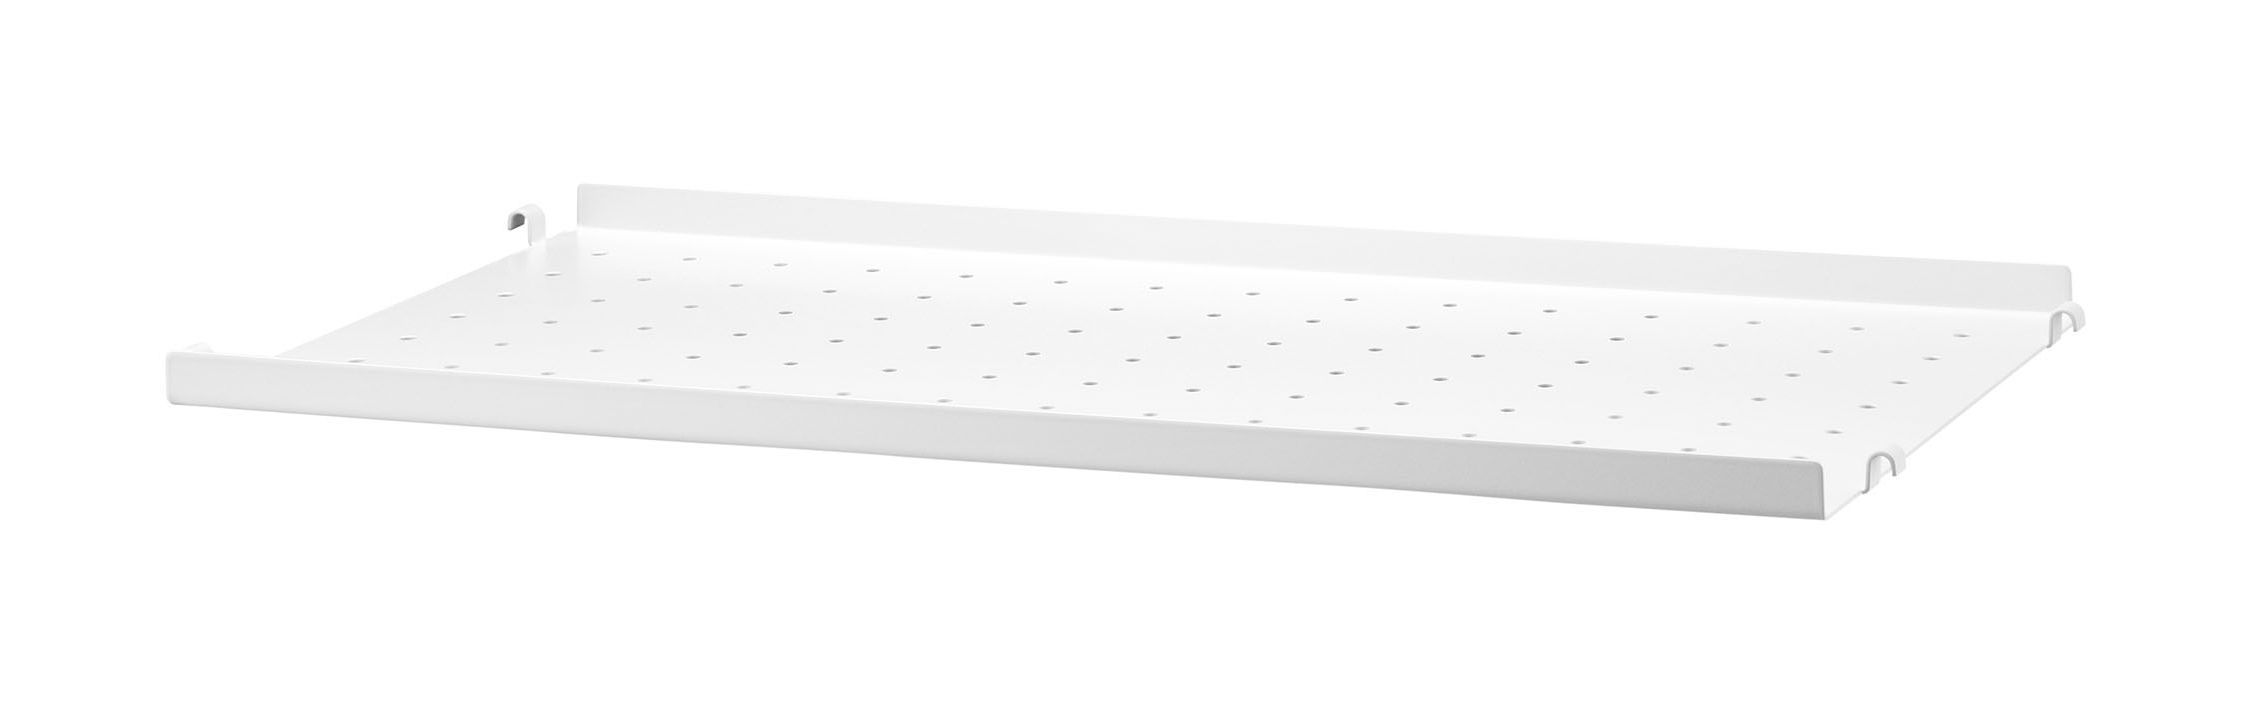 Furniture - Bookcases & Bookshelves - String System Shelf - / Perforated metal, LOW edge - L 58 x D 30 cm by String Furniture - L 58 cm / White - Lacquered metal